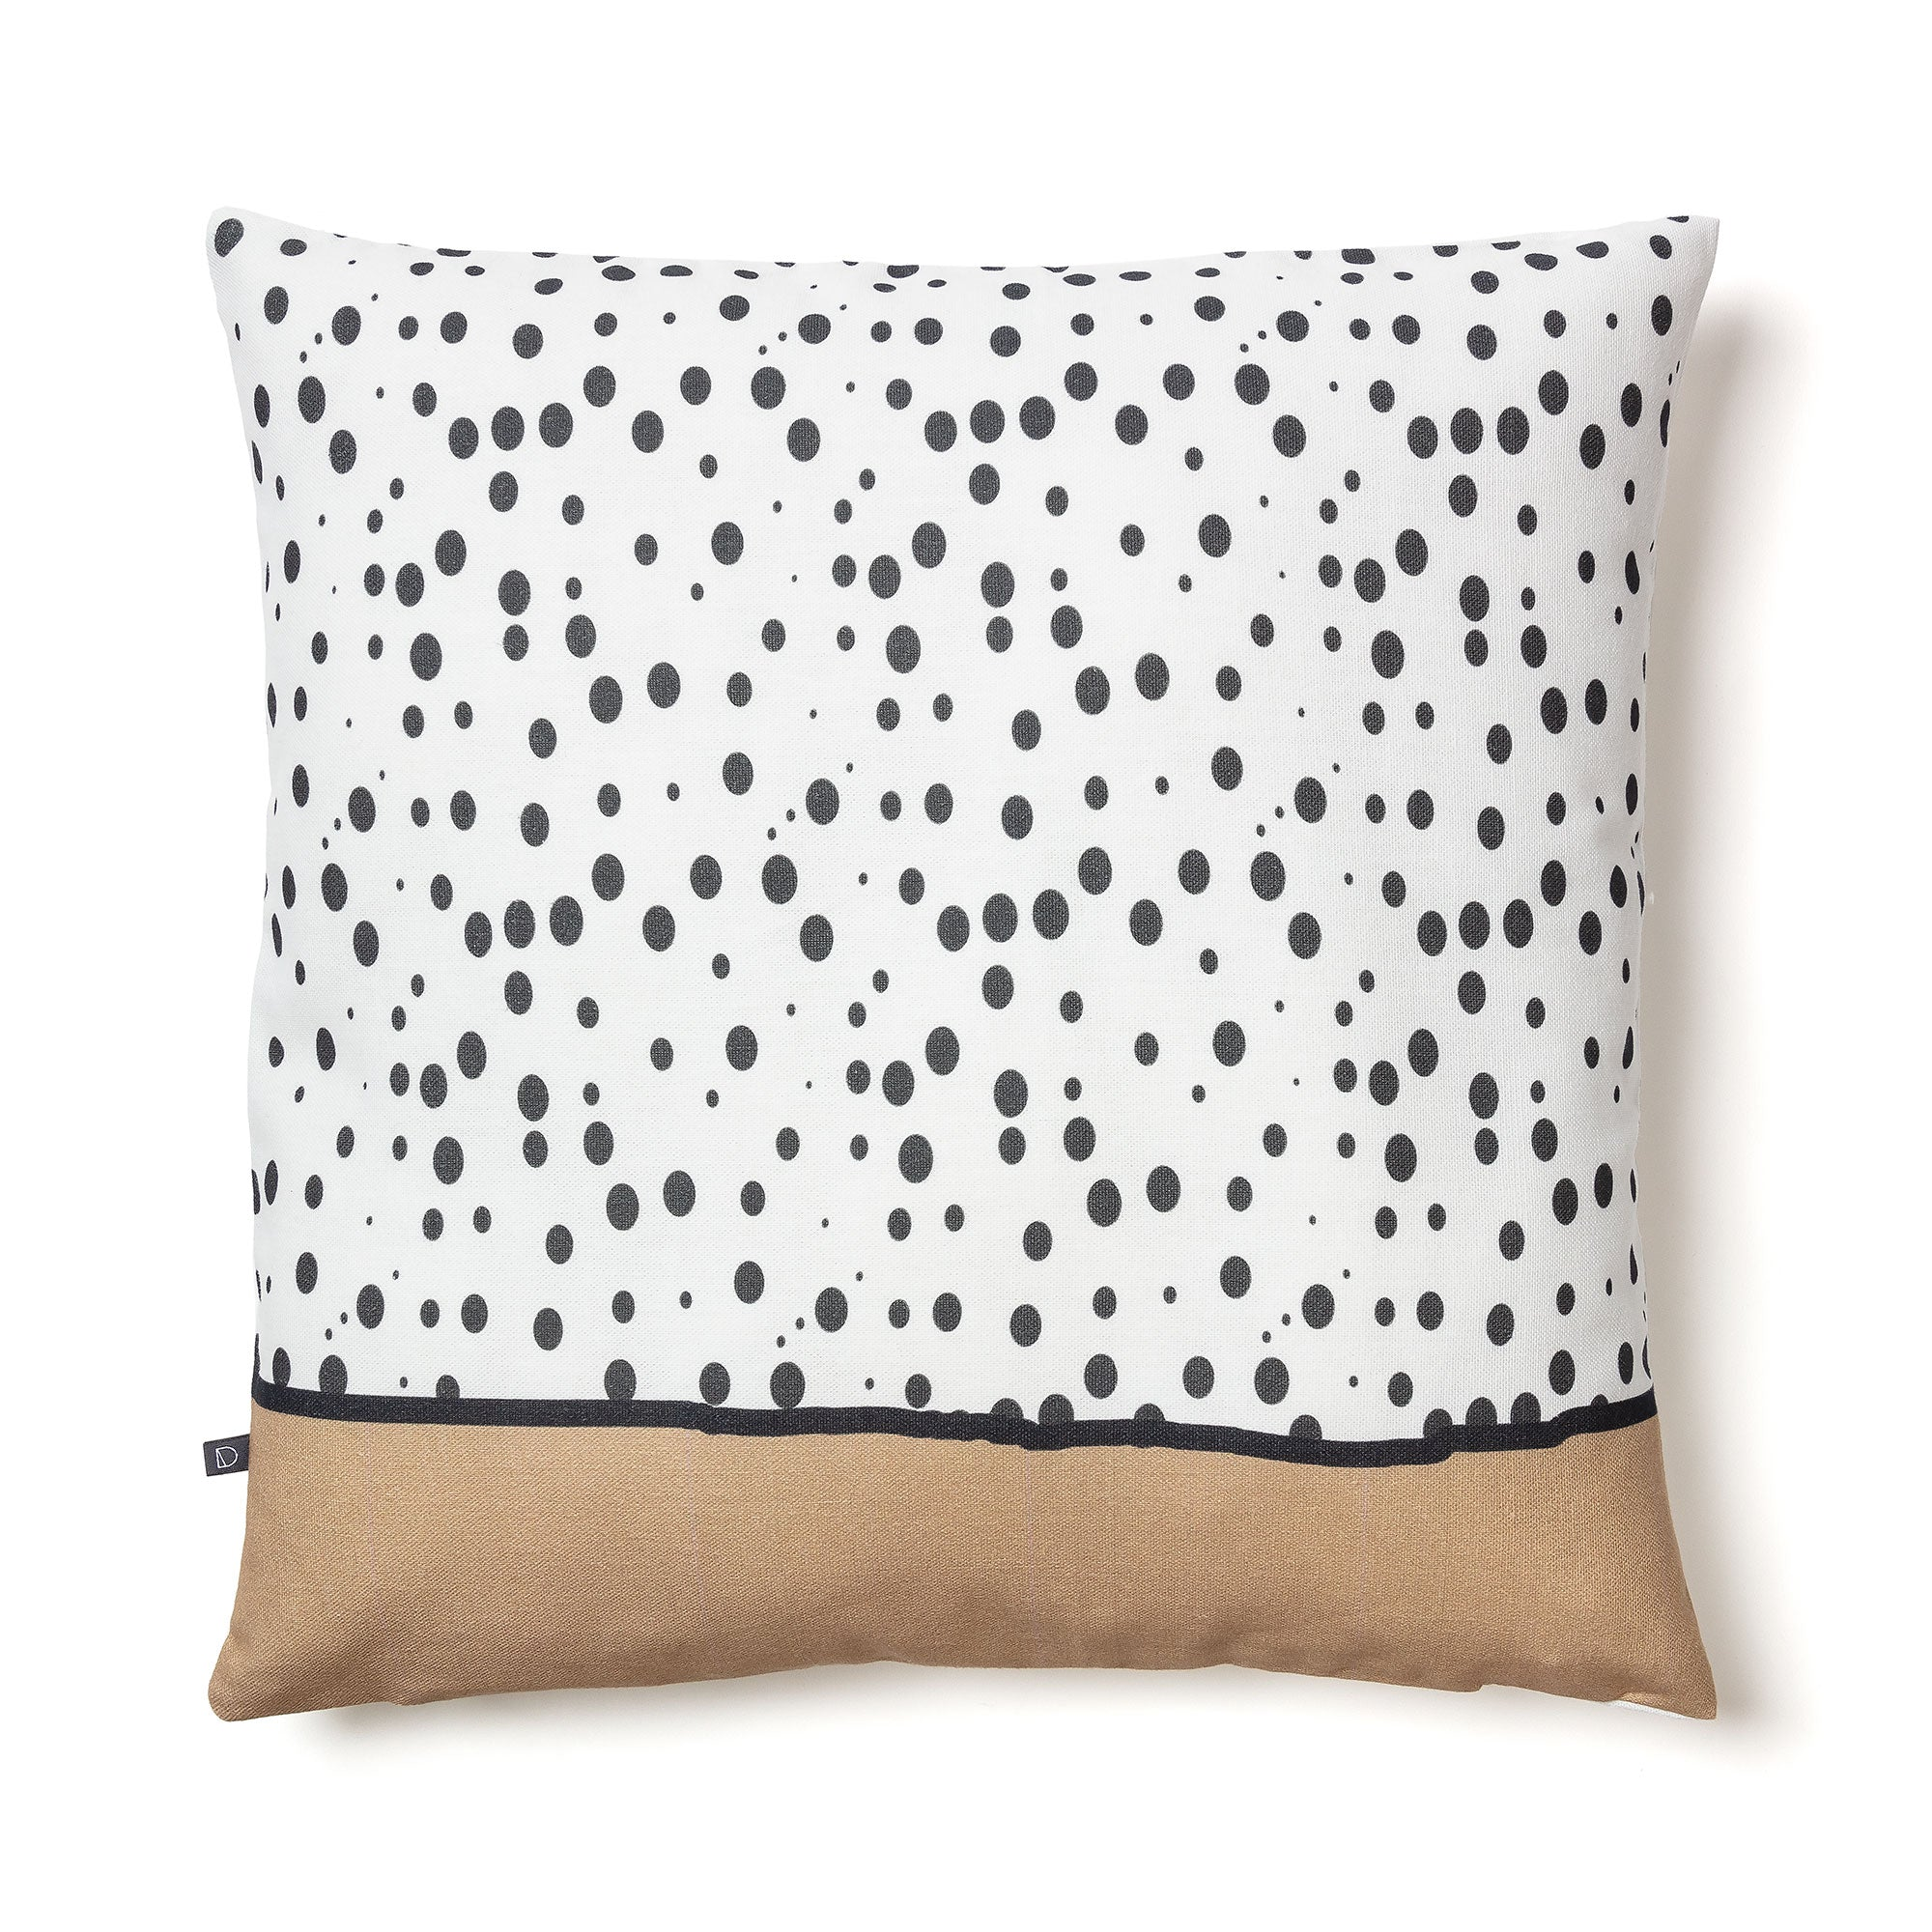 Heidi Cushion - White Fabric with Dark Grey Polka Dots and Beige Print 45 x 45 cm, Cushion - Home-Buy Interiors